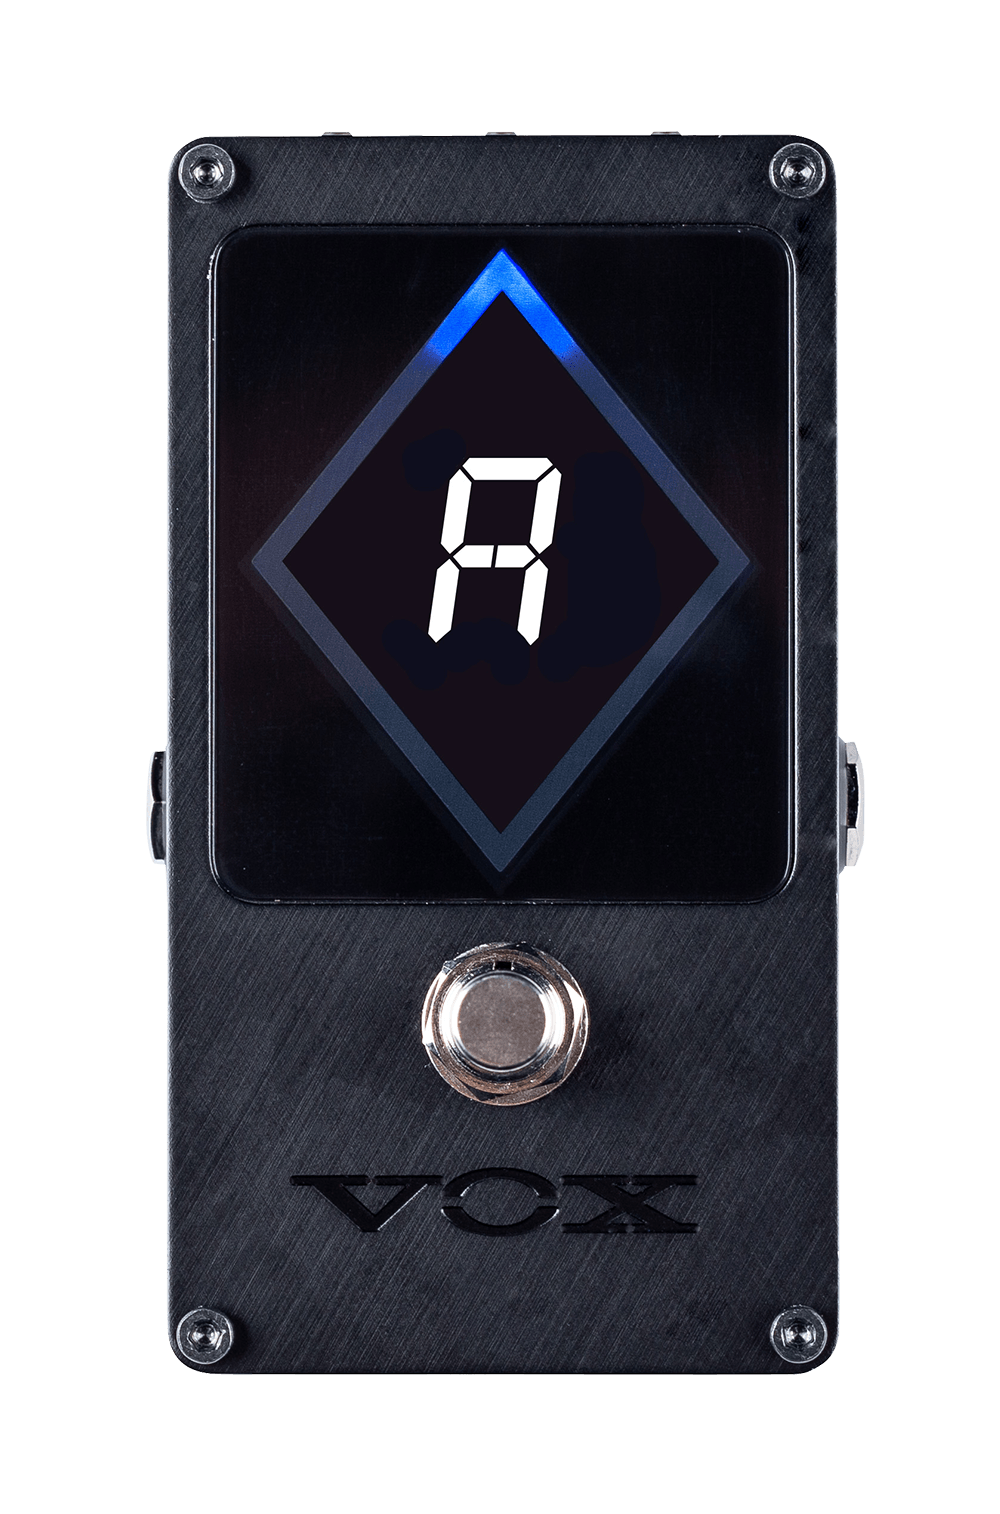 top view of VXT Pedal